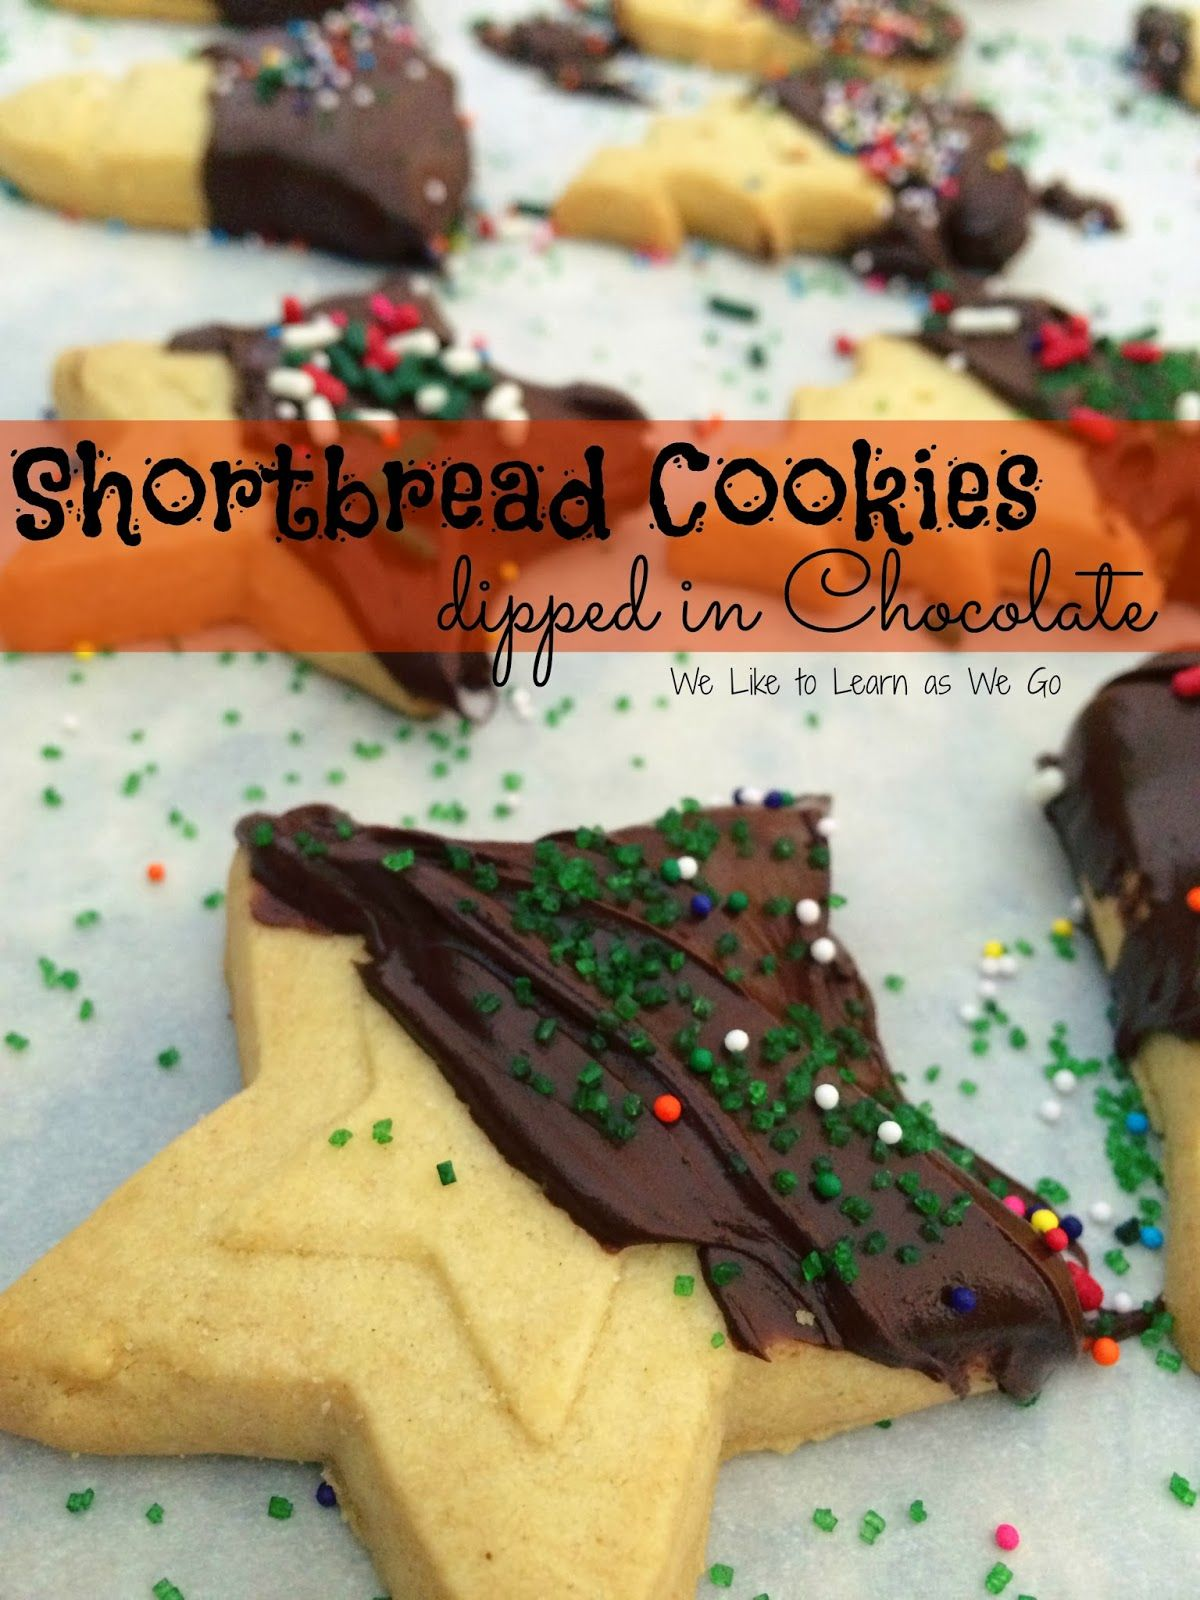 Shortbread Cookies dipped in Chocolate!  A fun and super easy holiday treat.  And so easy to do with your kids!   We Like to Learn as We Go